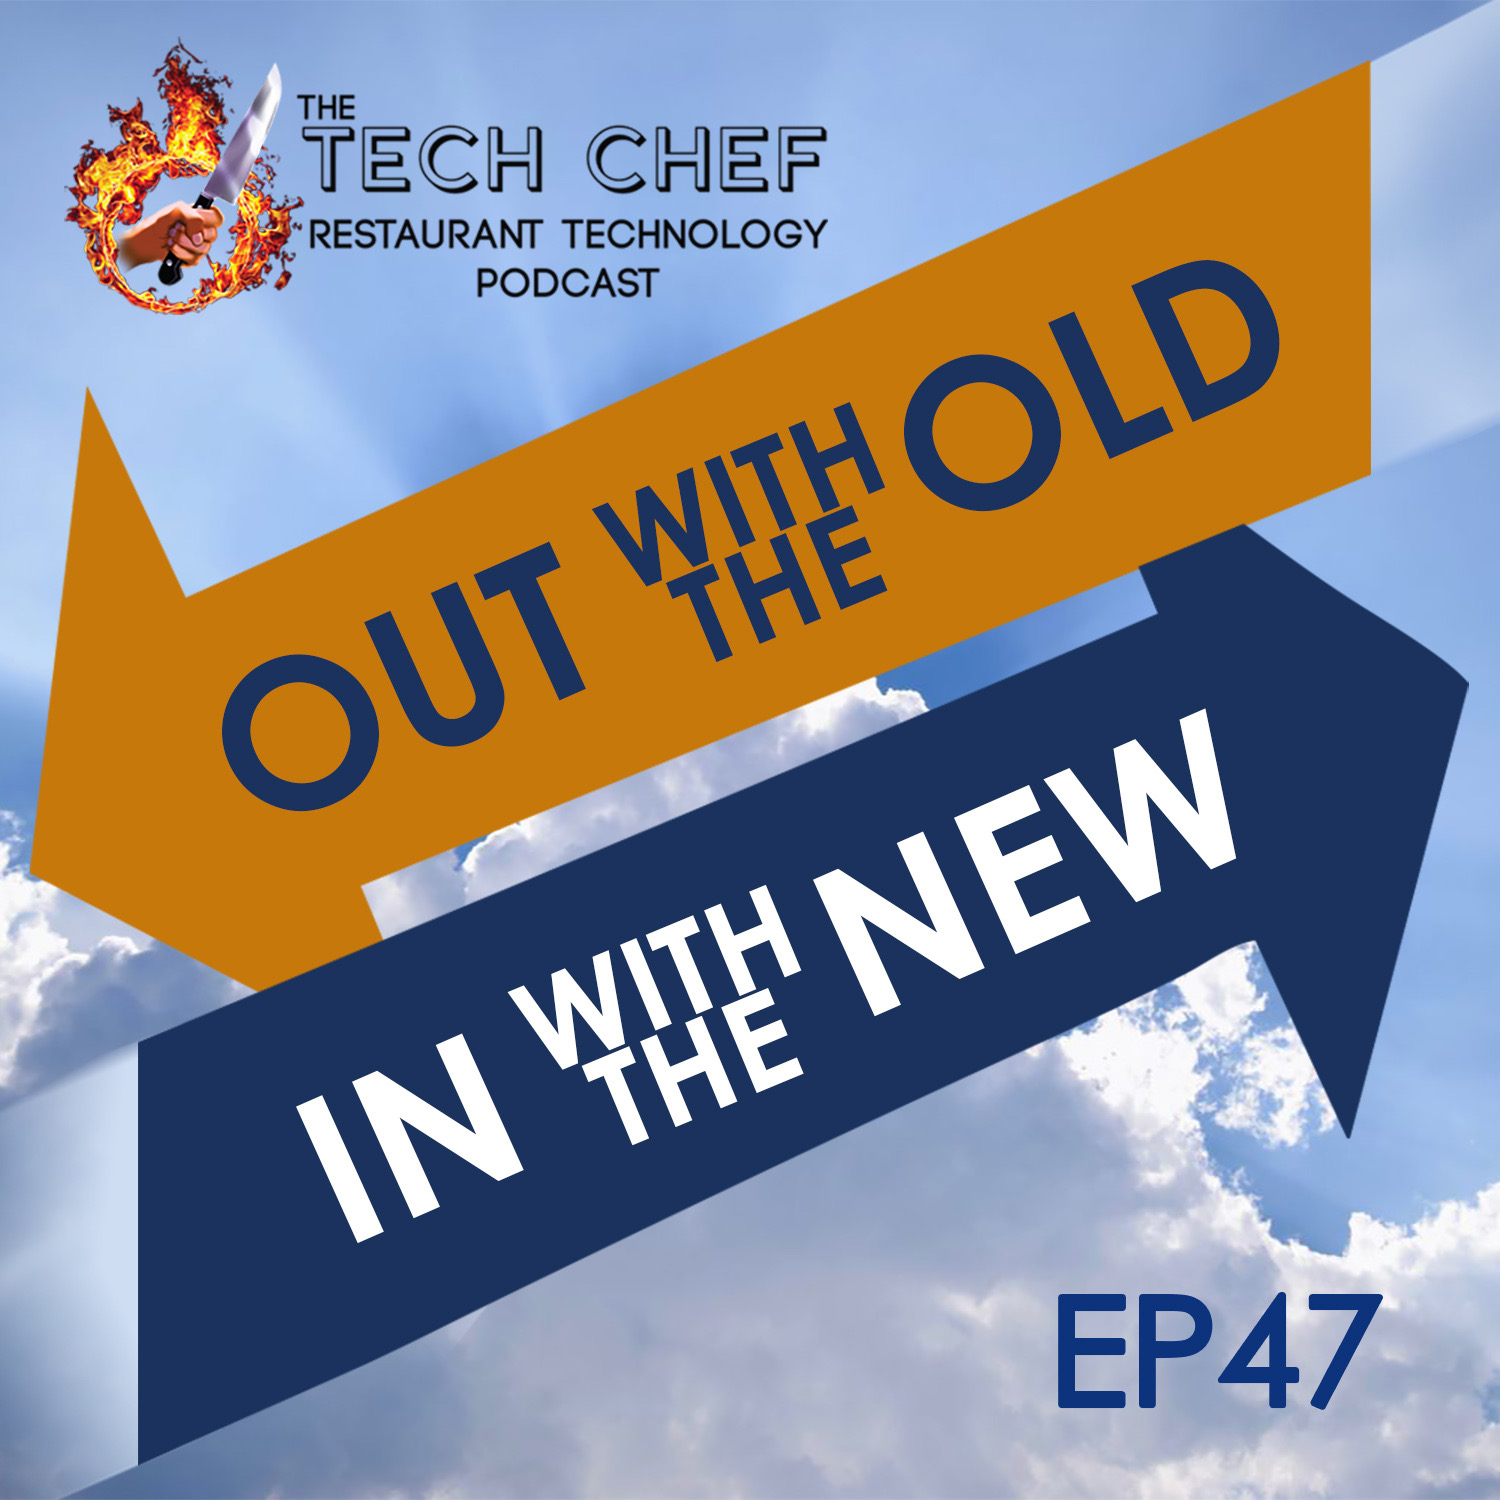 Artwork for podcast The Tech Chef, Restaurant, Hospitality and Hotel Technology Business Podcast